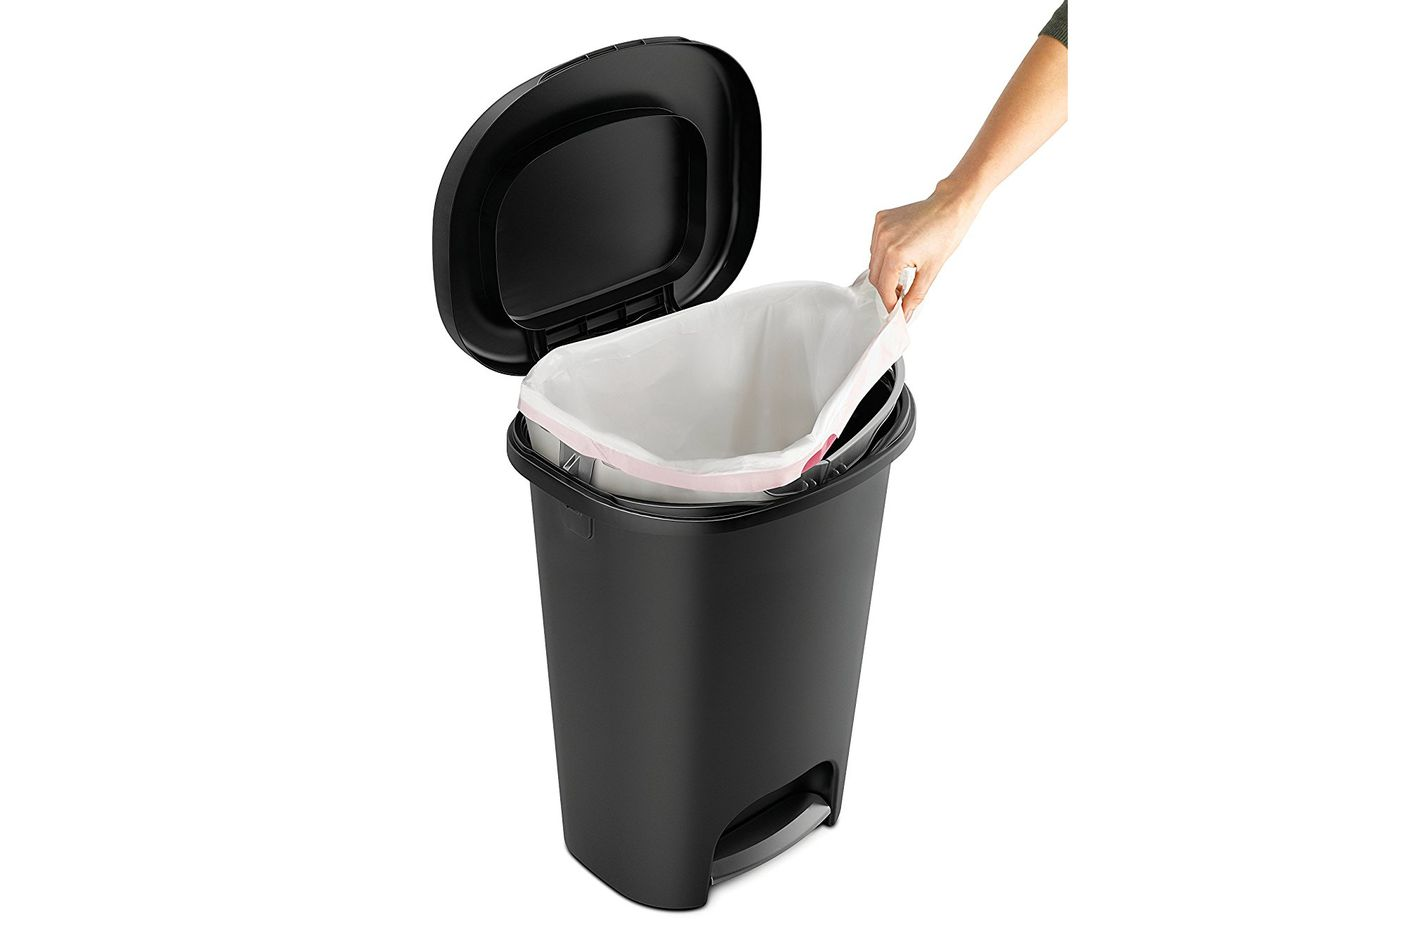 ... Kitchen Trash Can Under $25. Rubbermaid Step On Wastebasket, 13 Gallon  U2014 Black